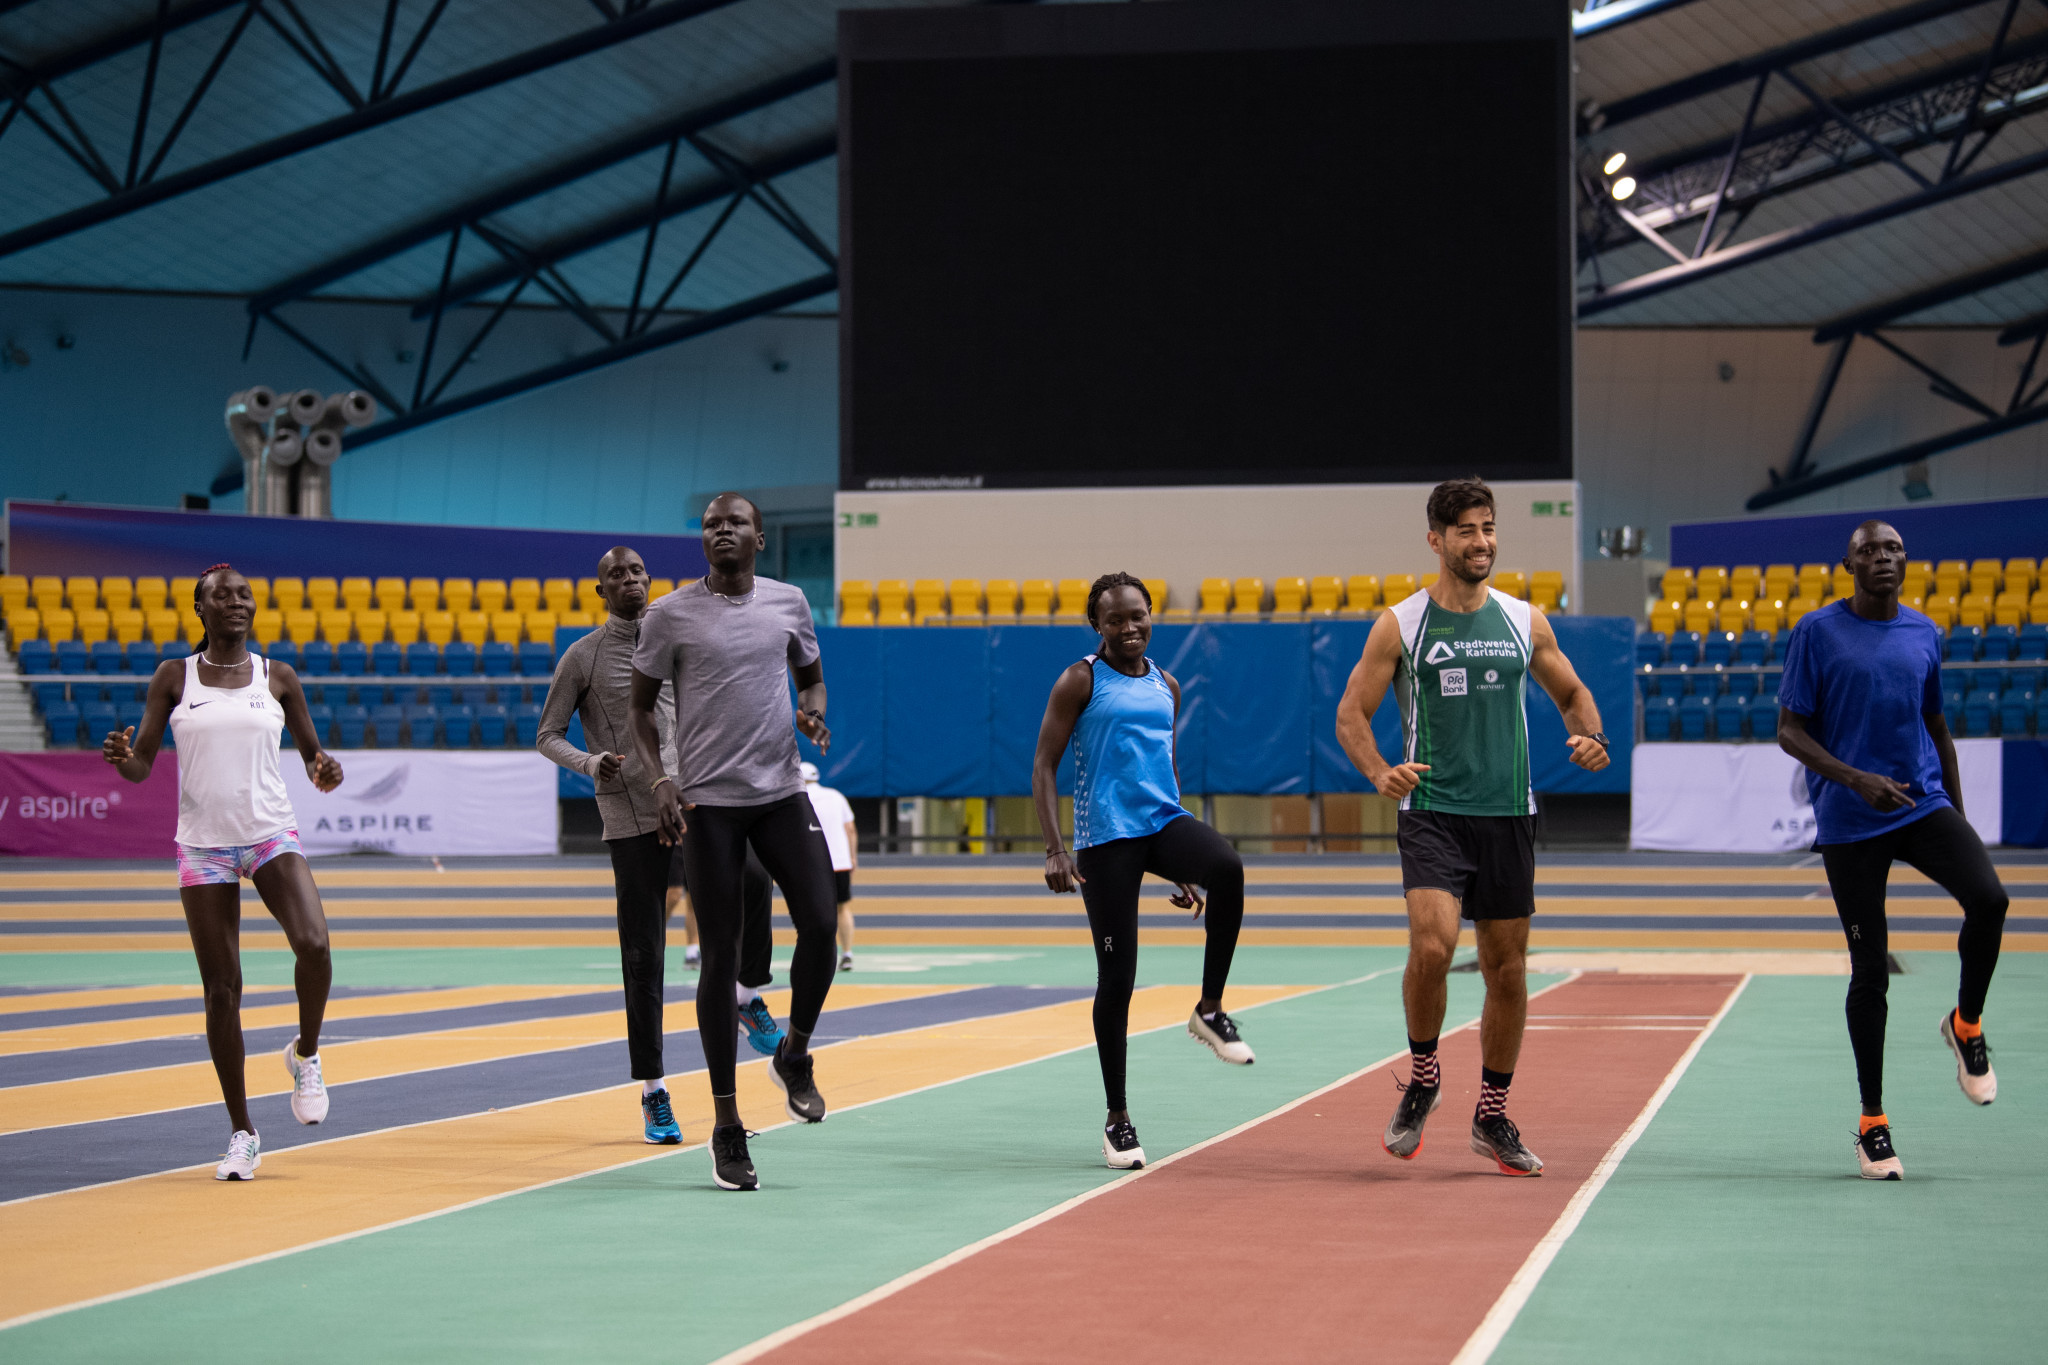 Refugee Olympic Team completes training camp in Qatar